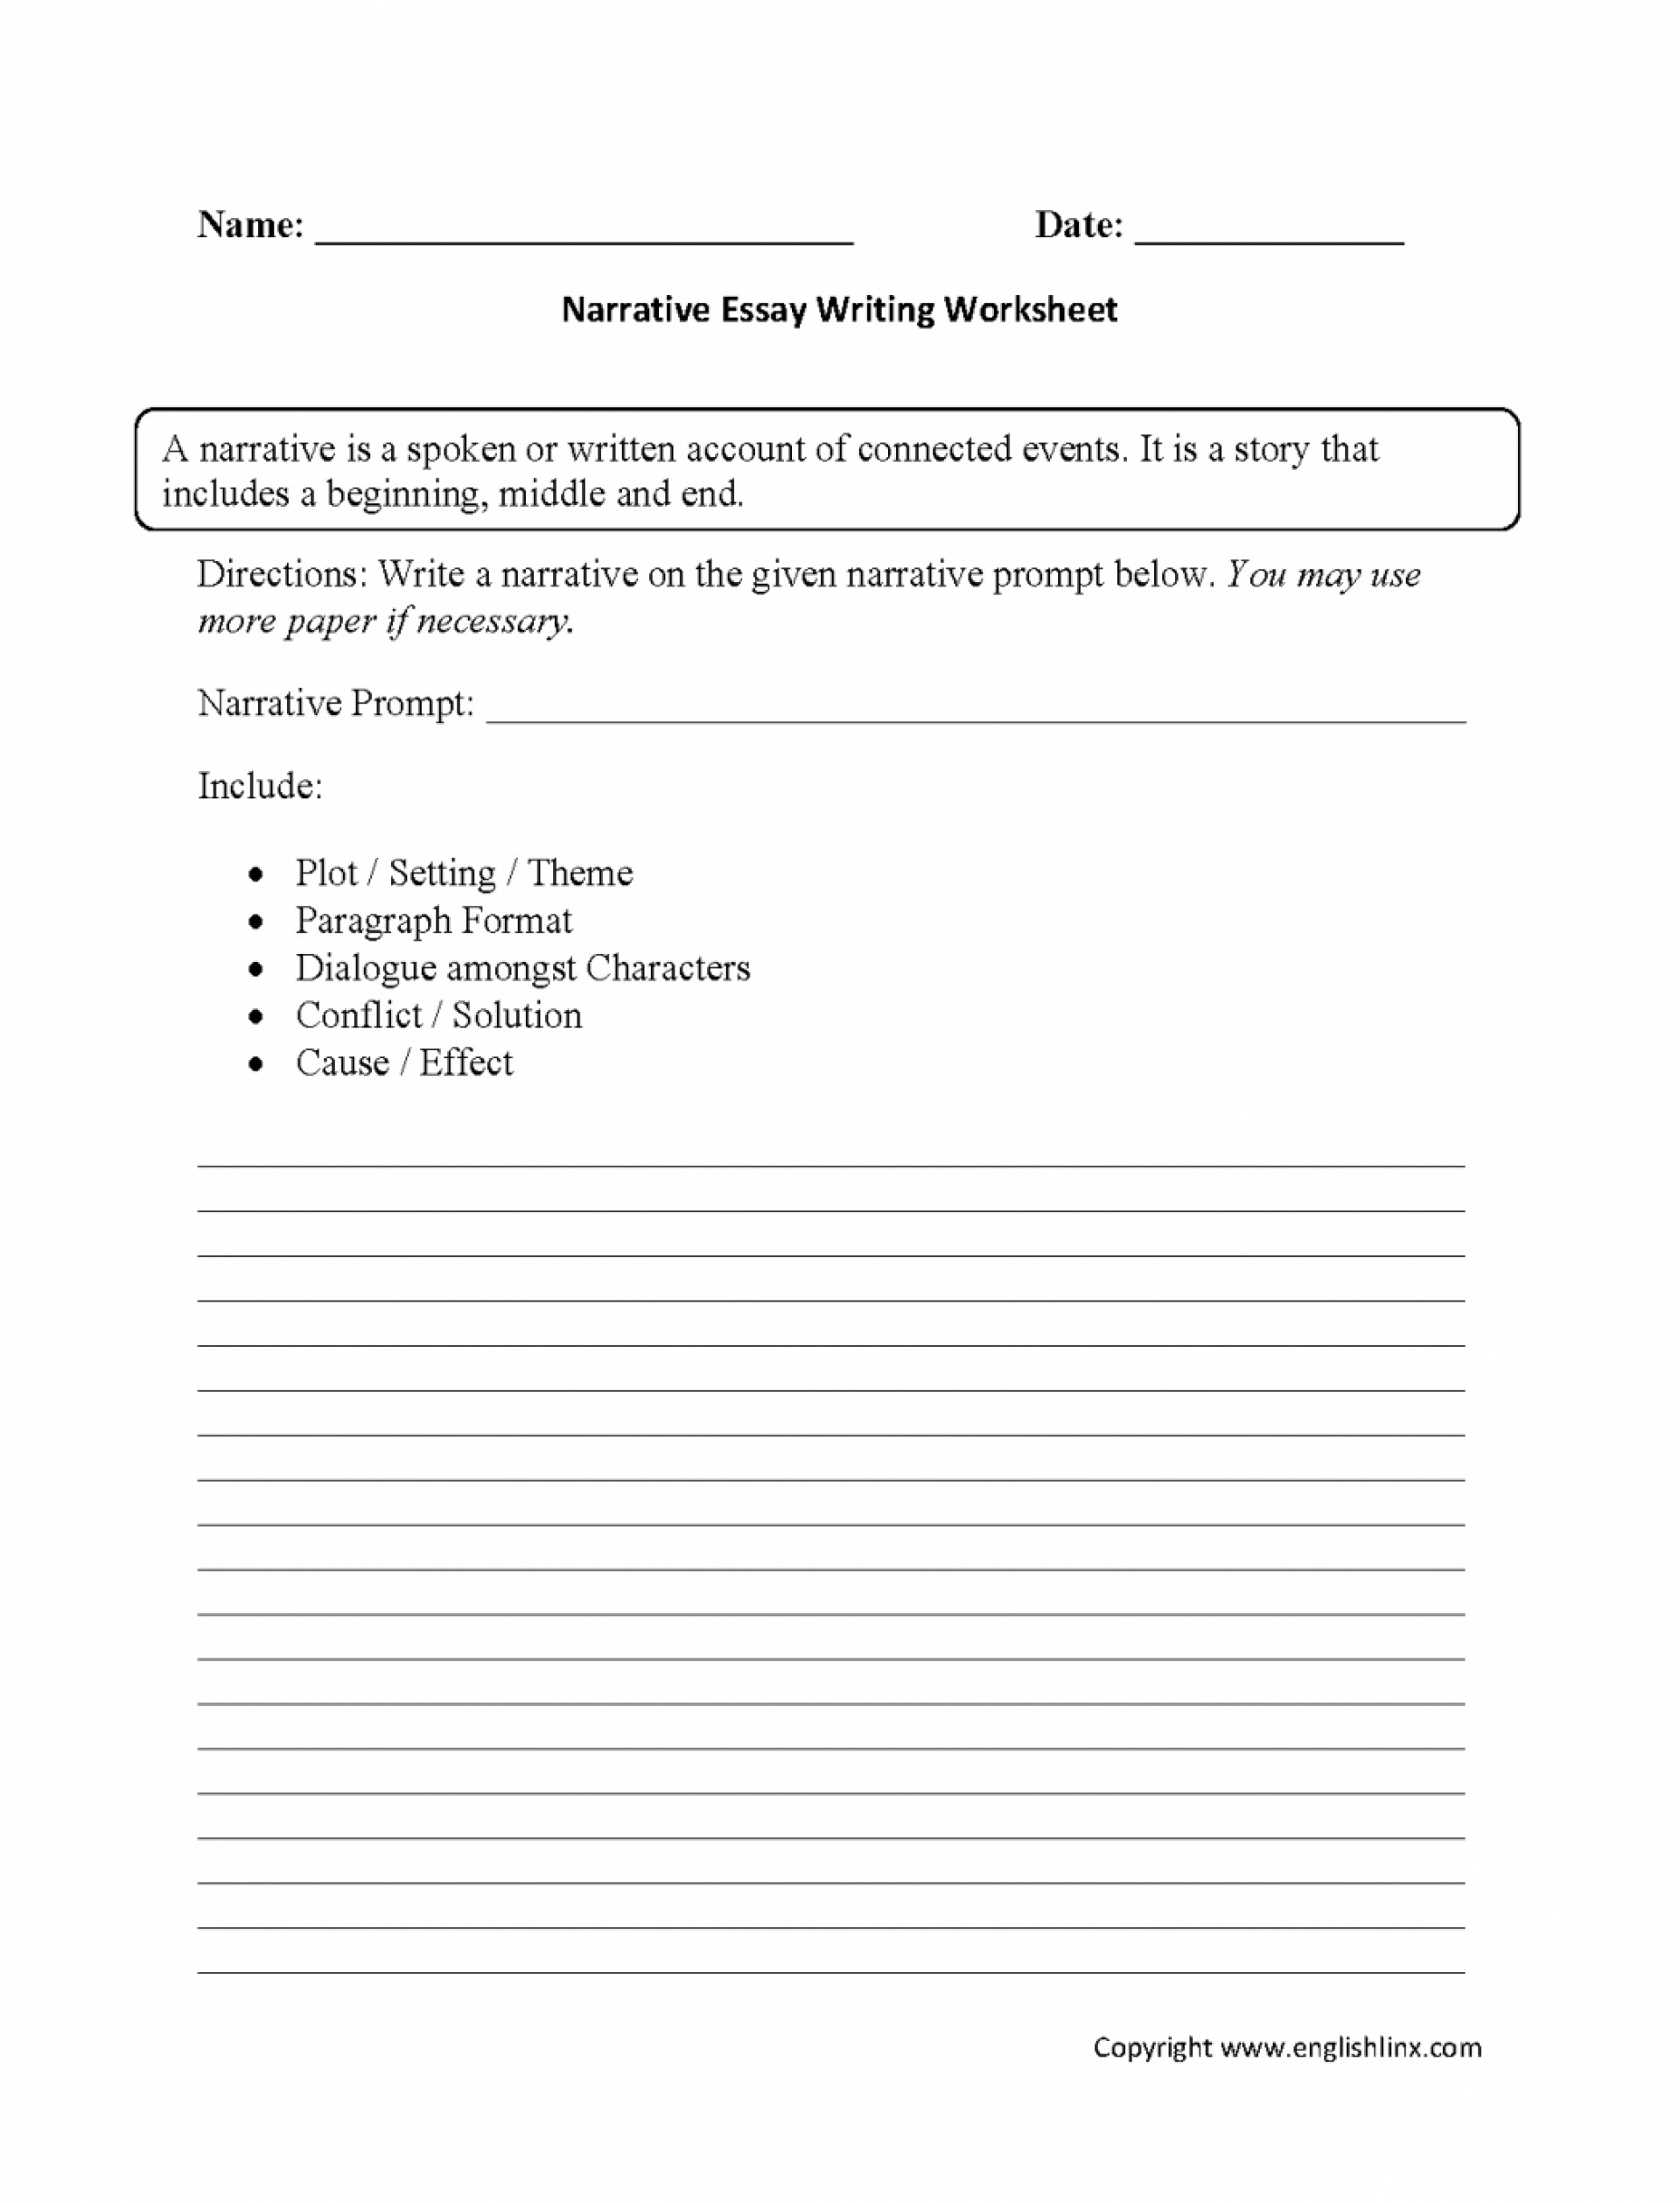 005 Essay Example Map Graphic Organizer Writing Worksheets Organizers For Within College Surprising Application Argumentative 1920